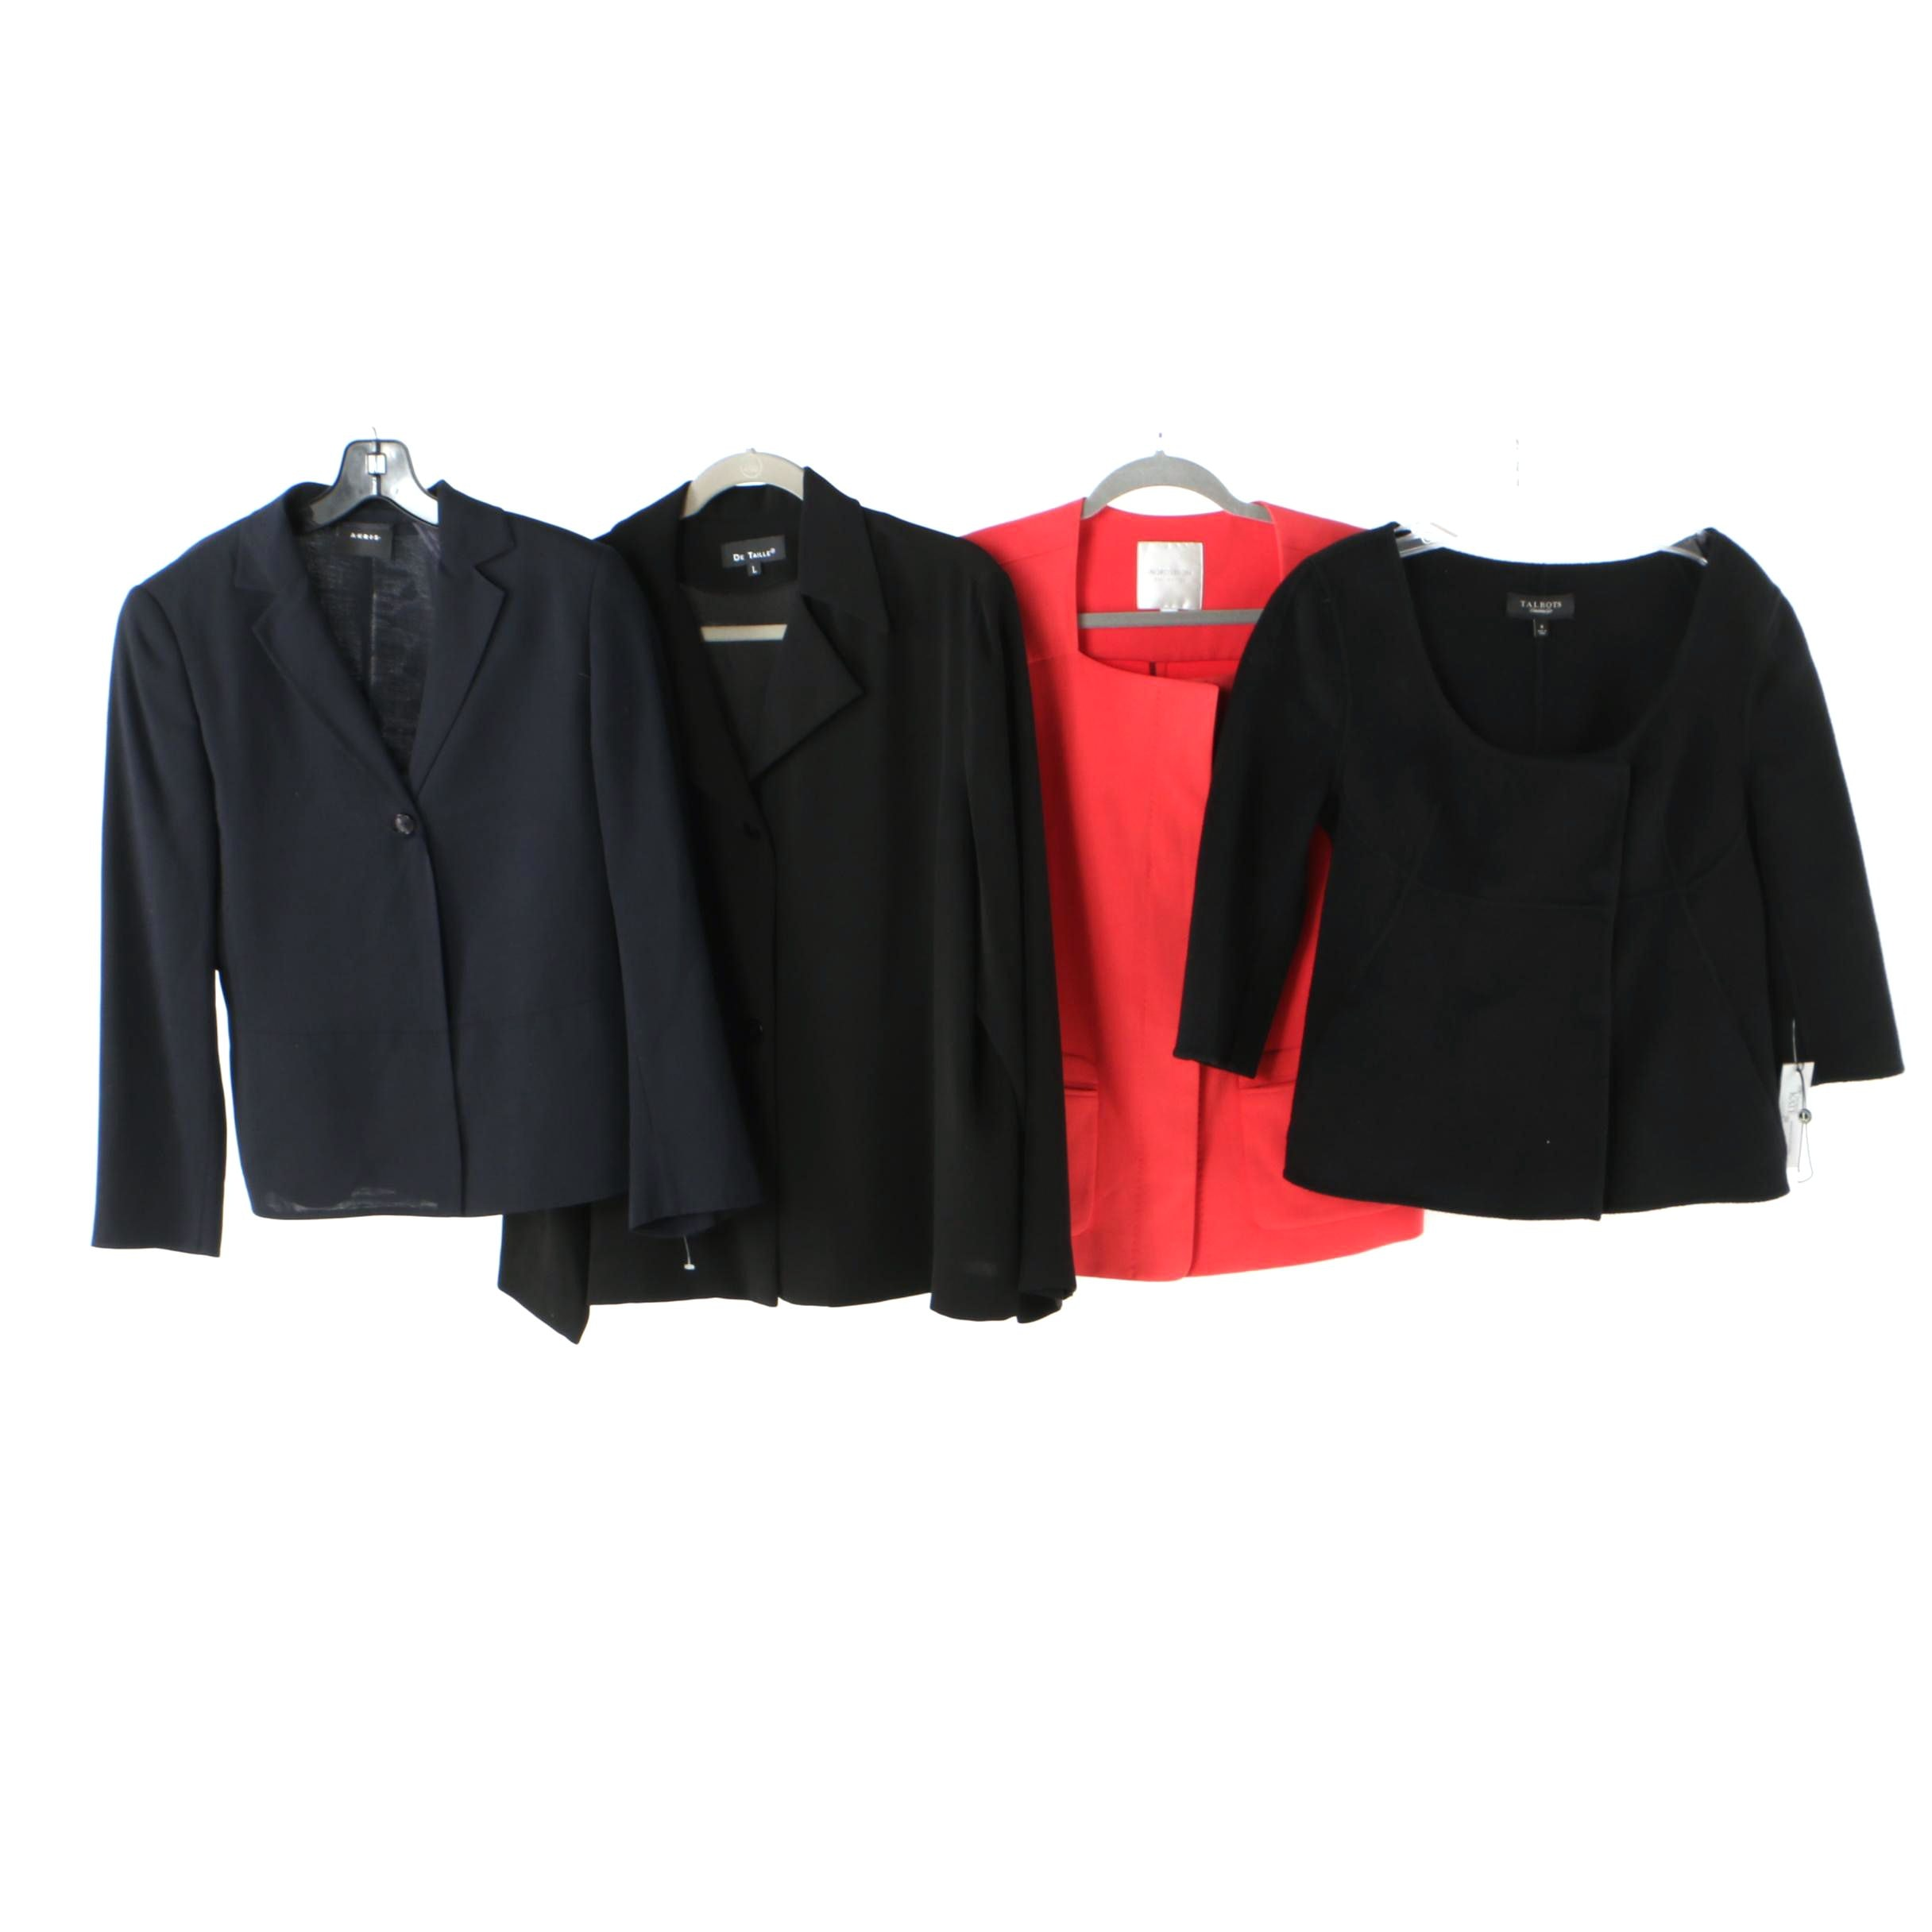 Contemporary Jackets with A-K-R-I-S, Talbots, De Talle and Nordstrom